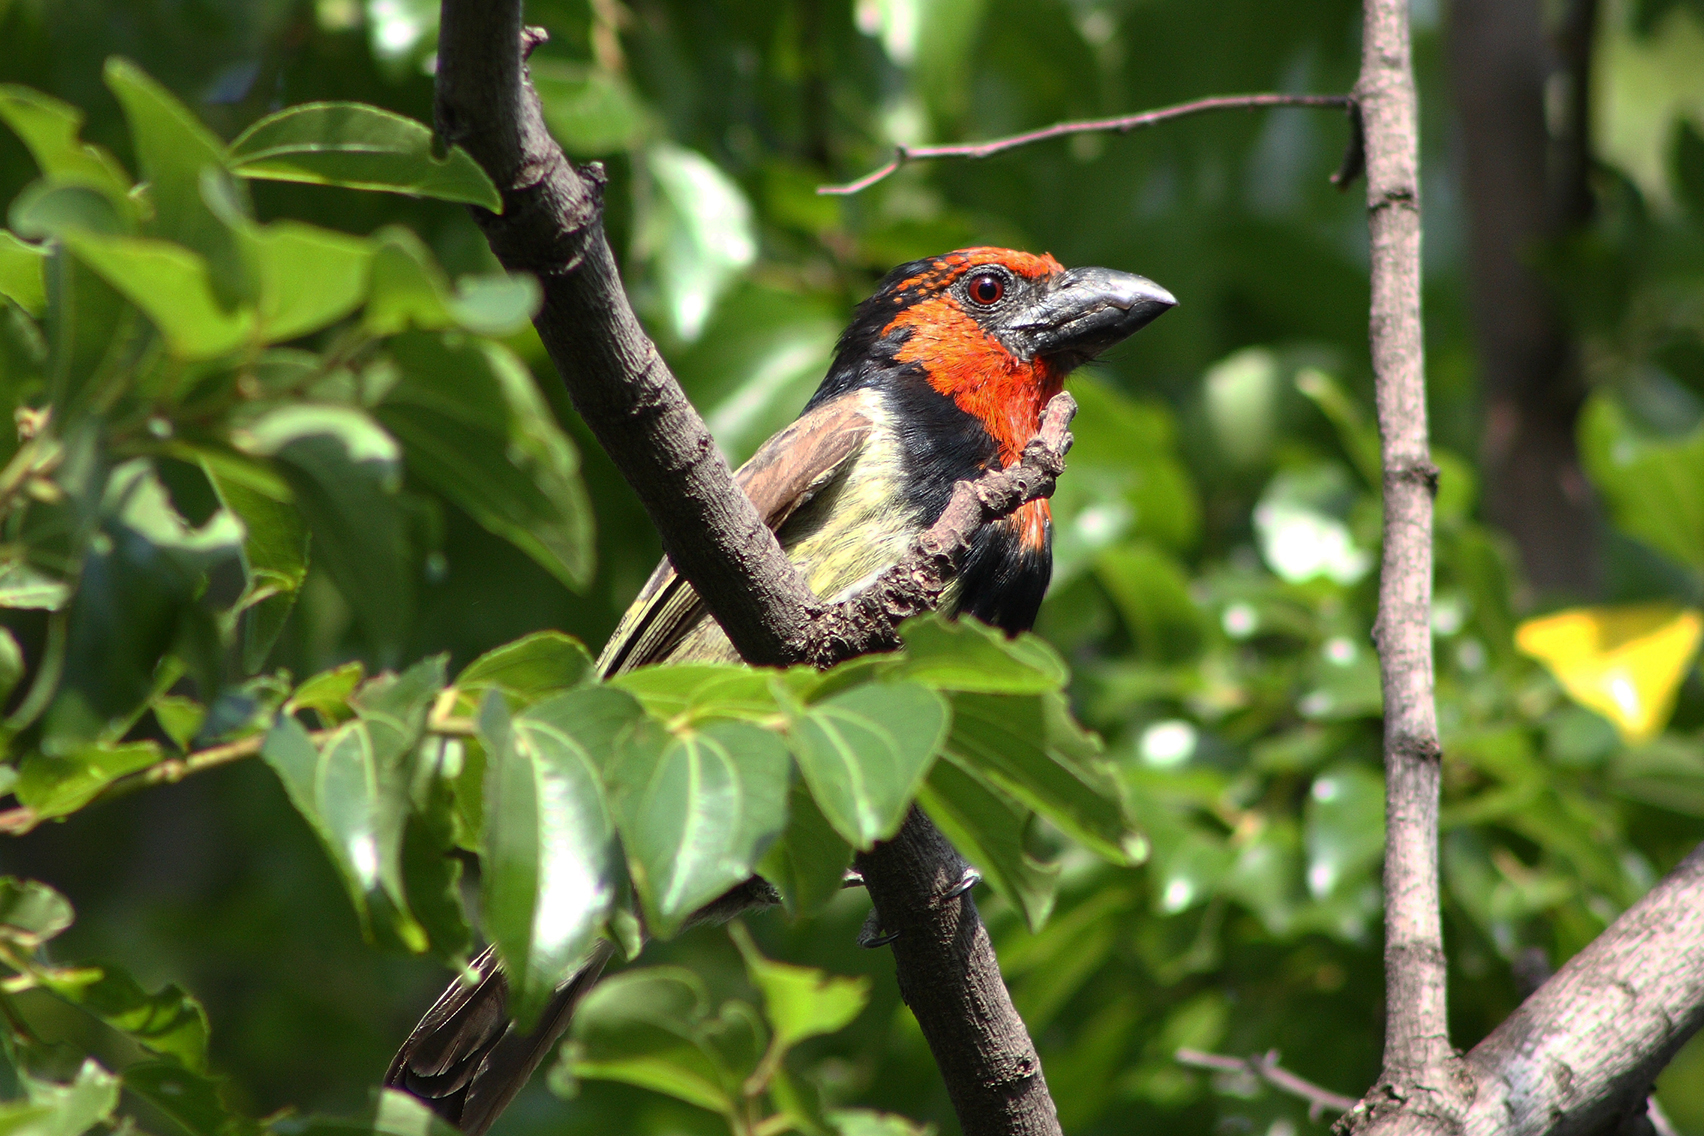 The Black-collared Barbet